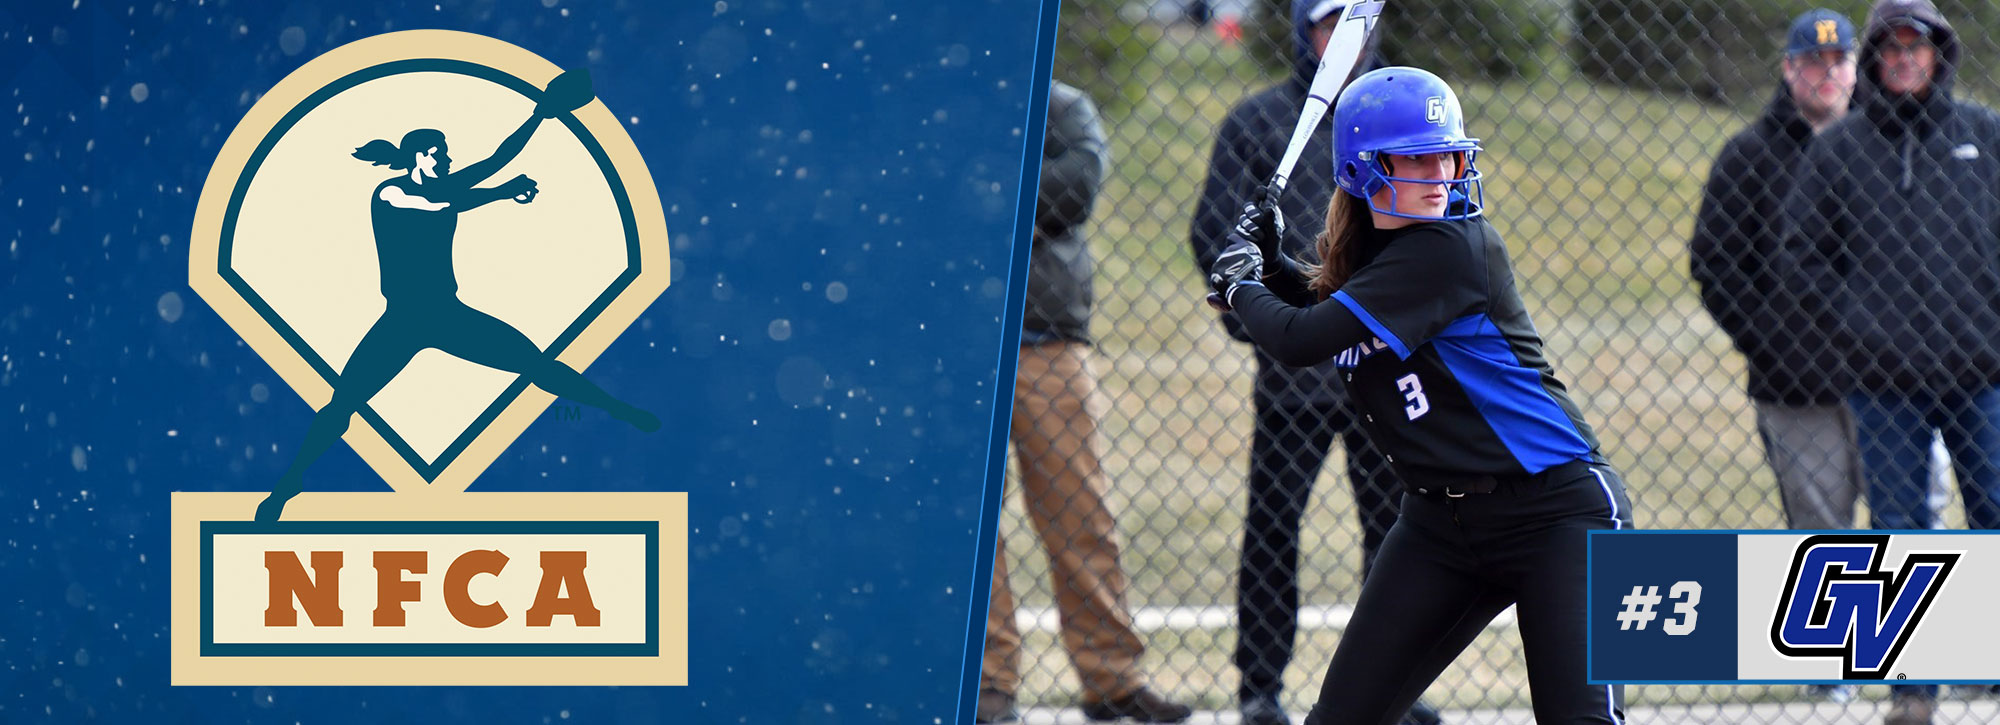 Lakers ranked 3rd in NFCA Coaches' Poll